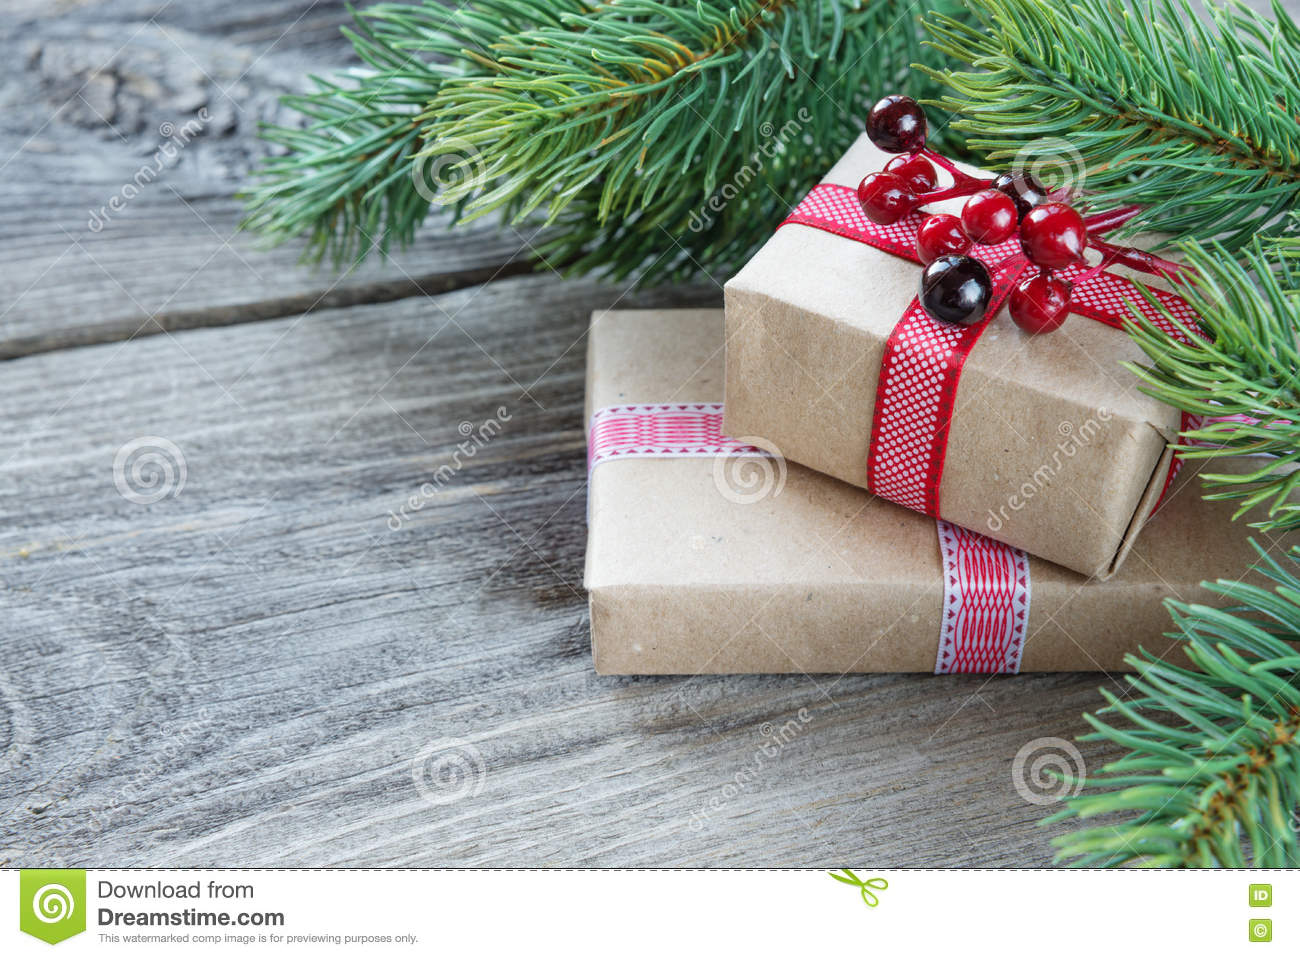 Christmas Wallpaper With Gift Boxes Stock Image - Image of planks ...